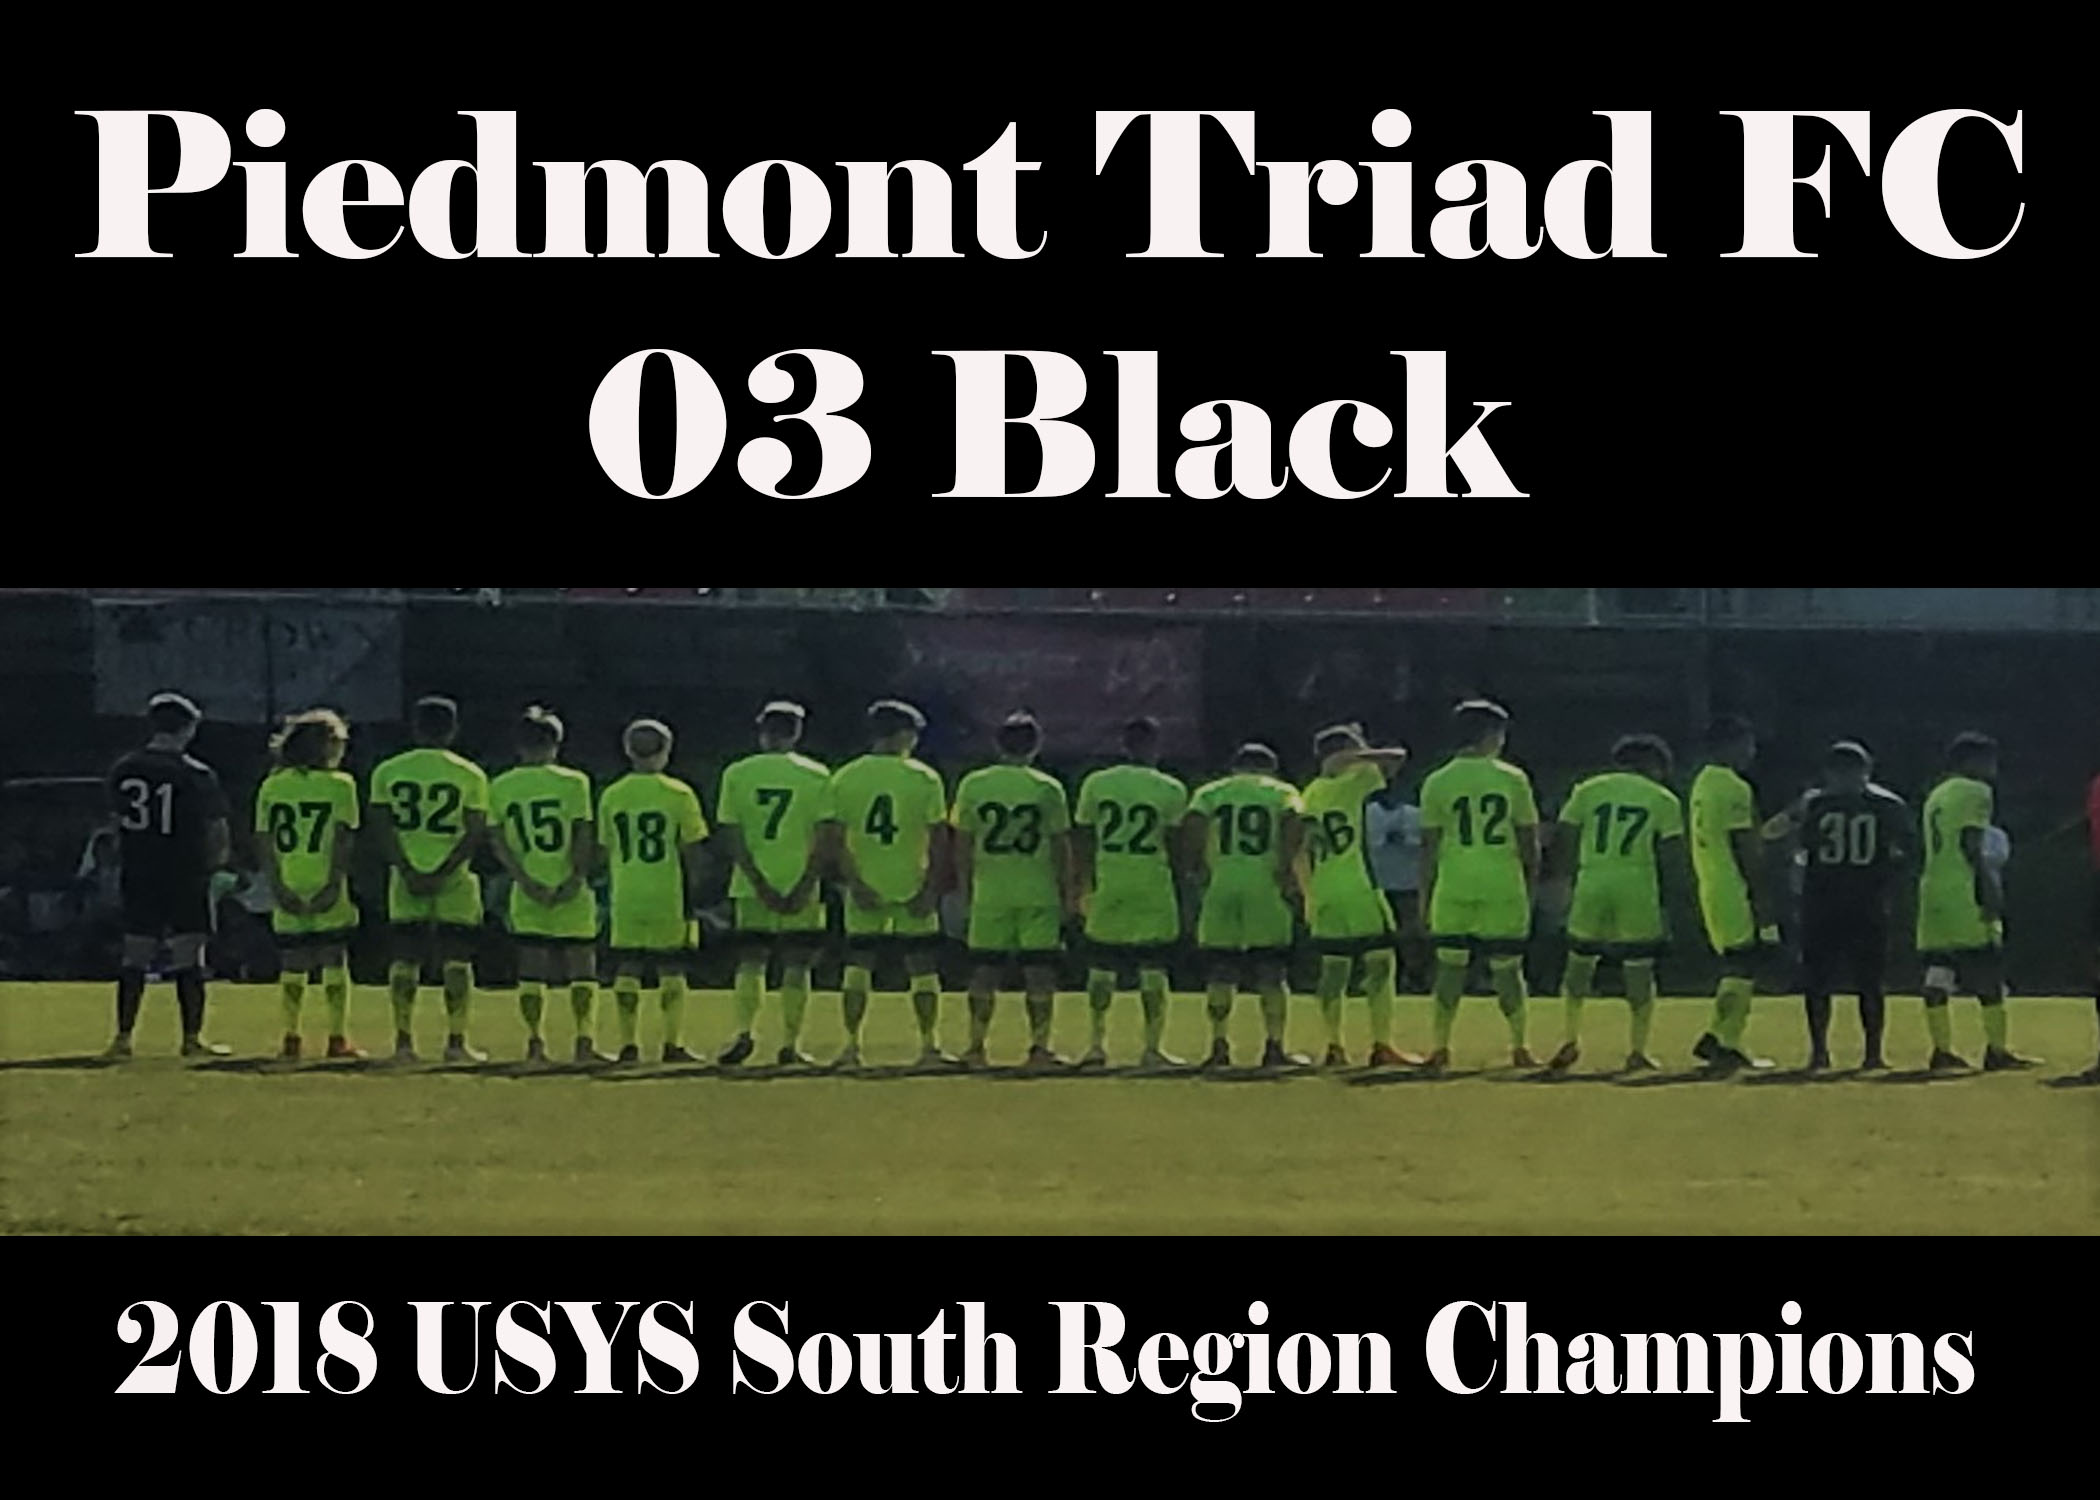 PTFC 03 Black Headed to USYS National Championship